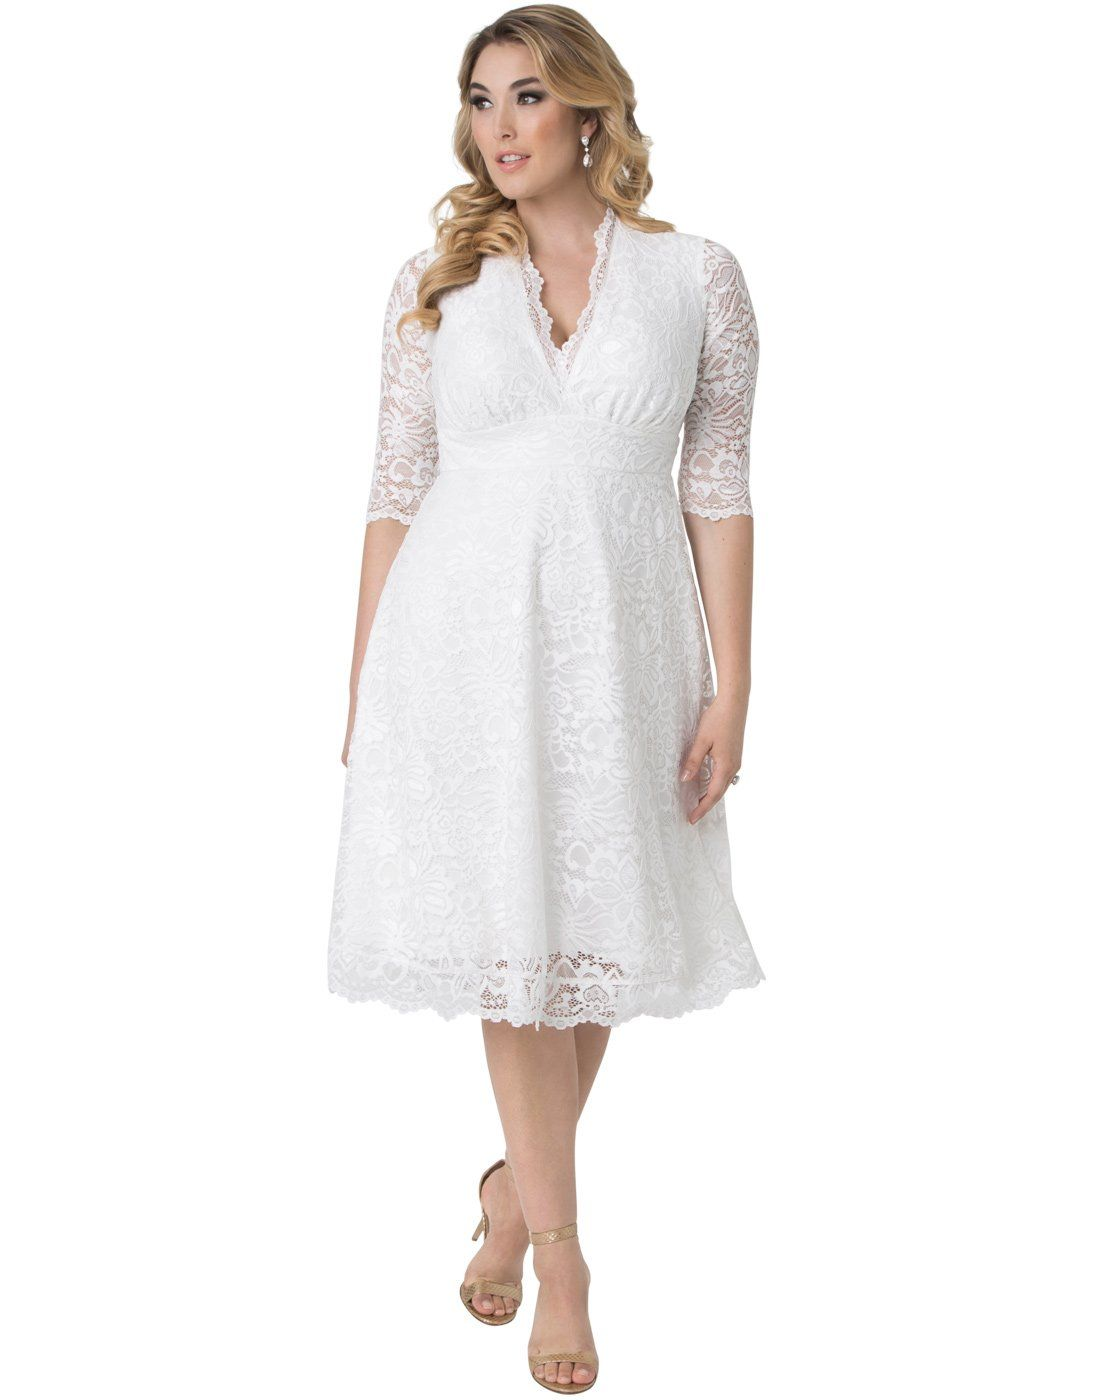 c89820268dd8 Kiyonna Womens Plus Size Wedding Belle Dress 5X Ivory -- Read more at the  image link. (This is an affiliate link)